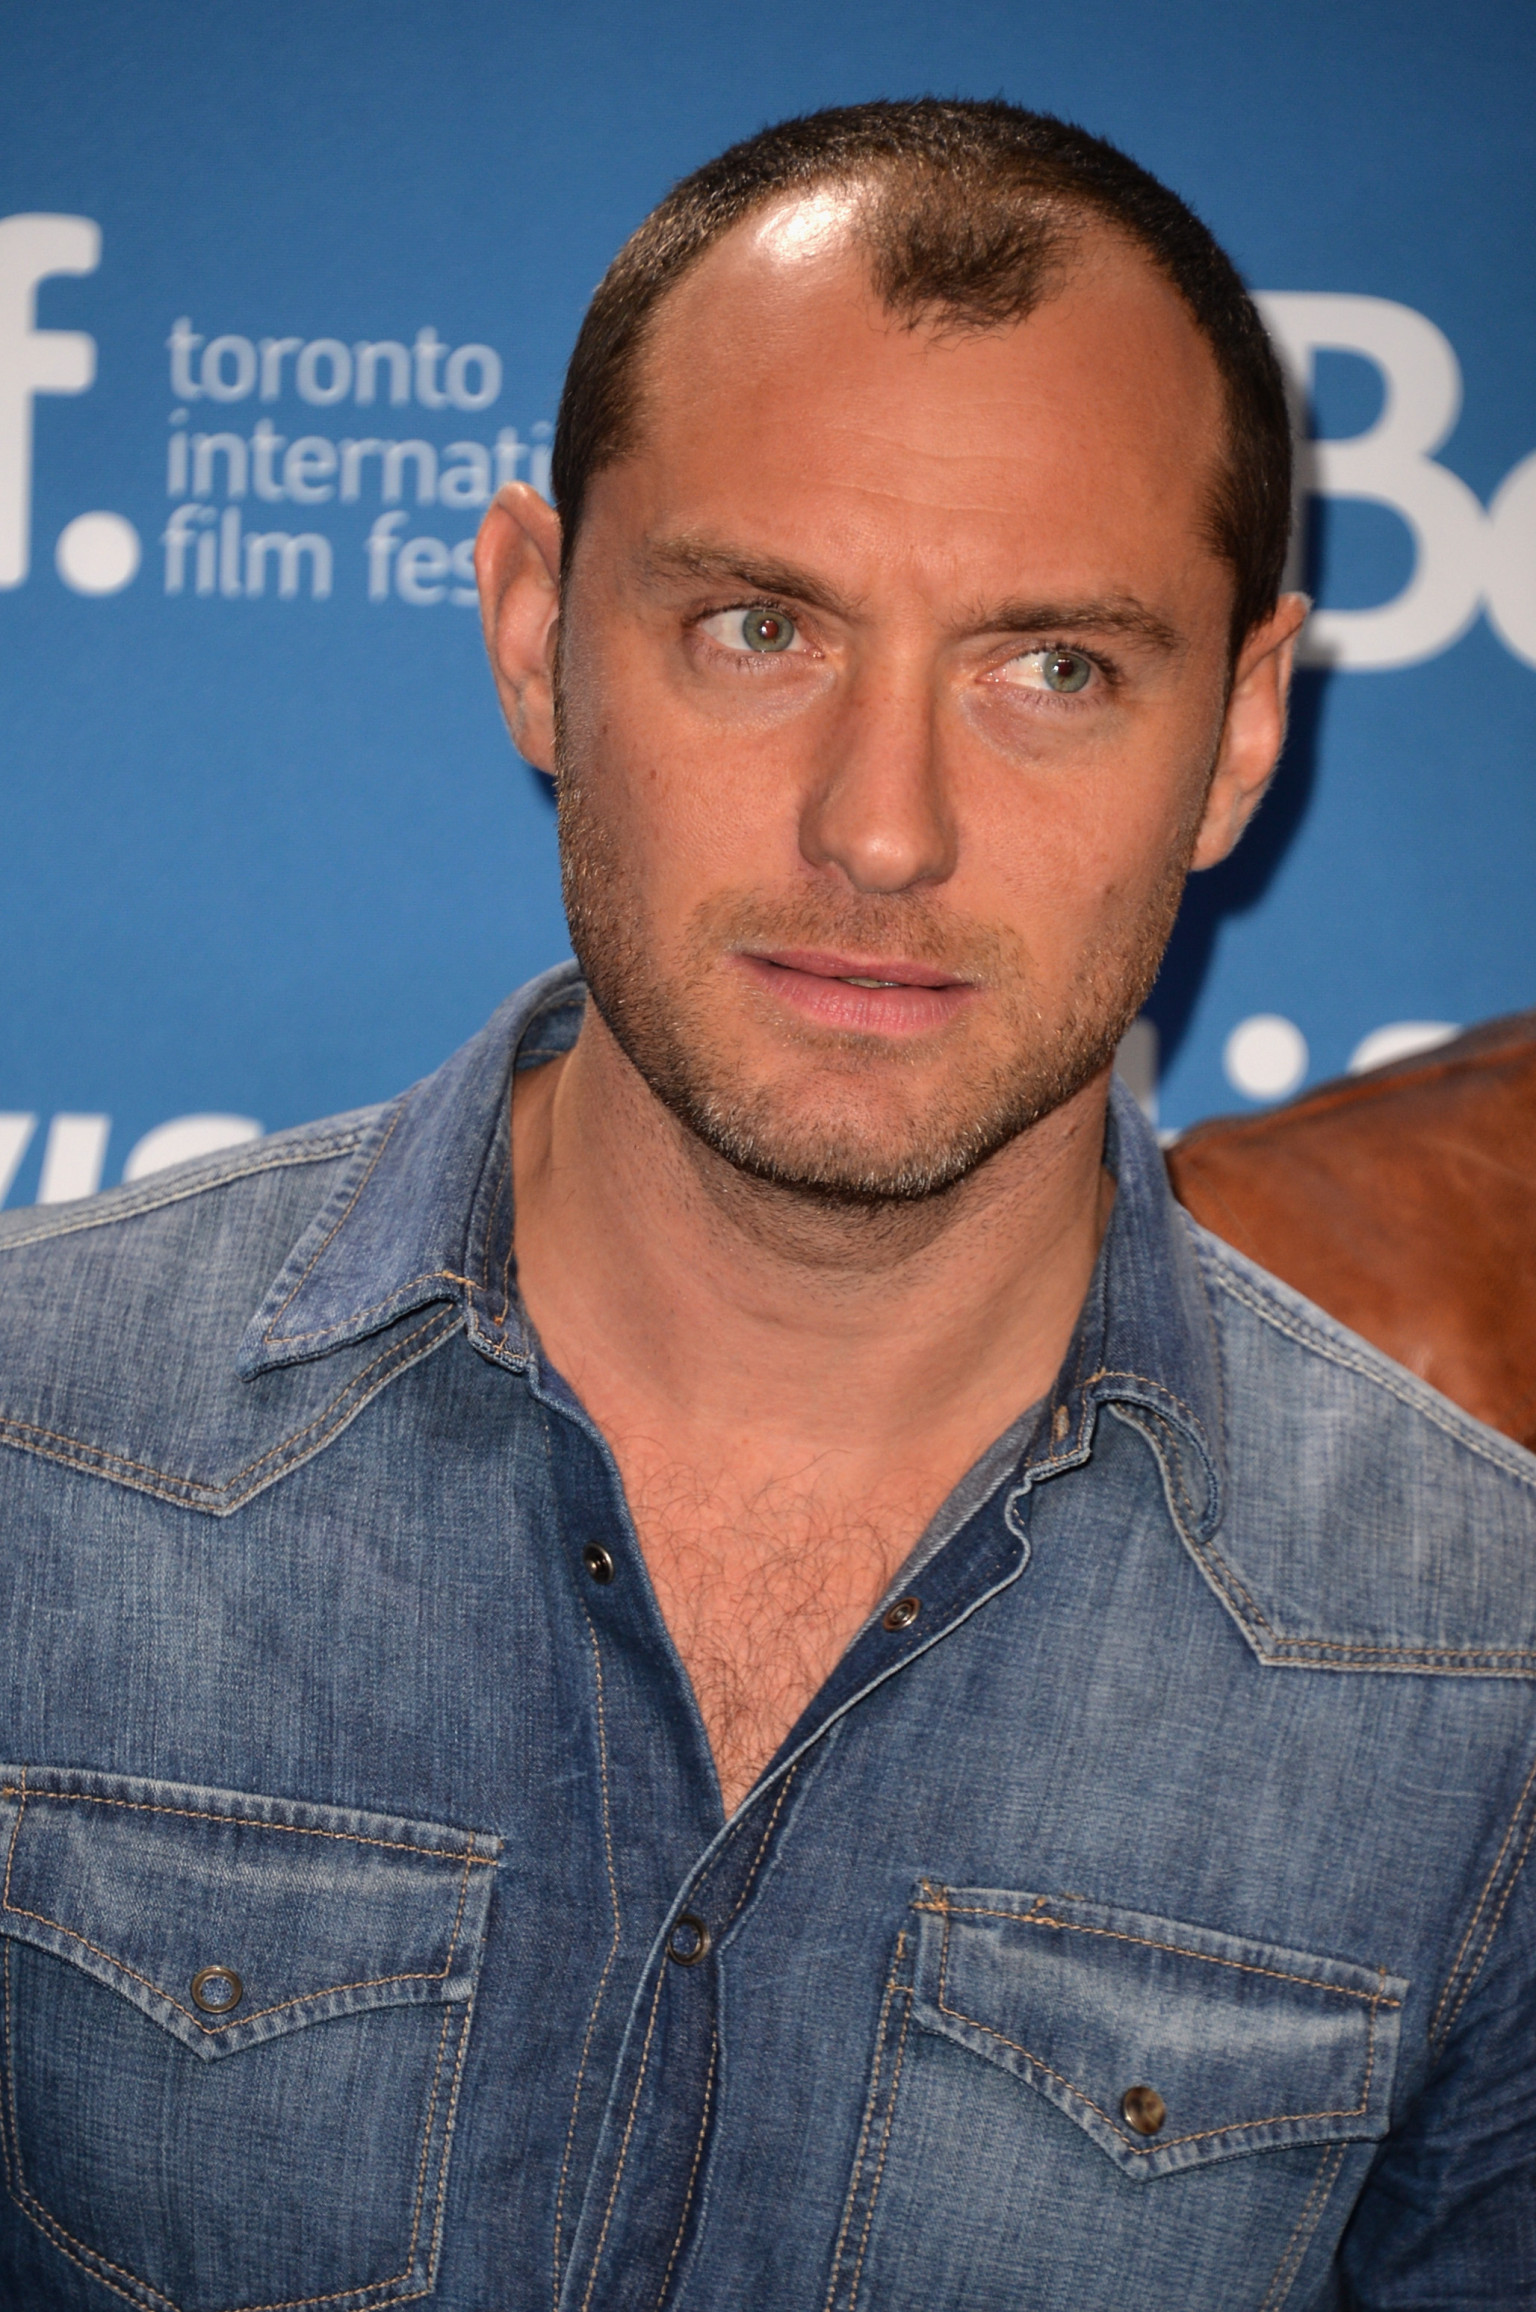 Jude Law Explains The Variations Of 'F--k' In His New Film ... Jude Law